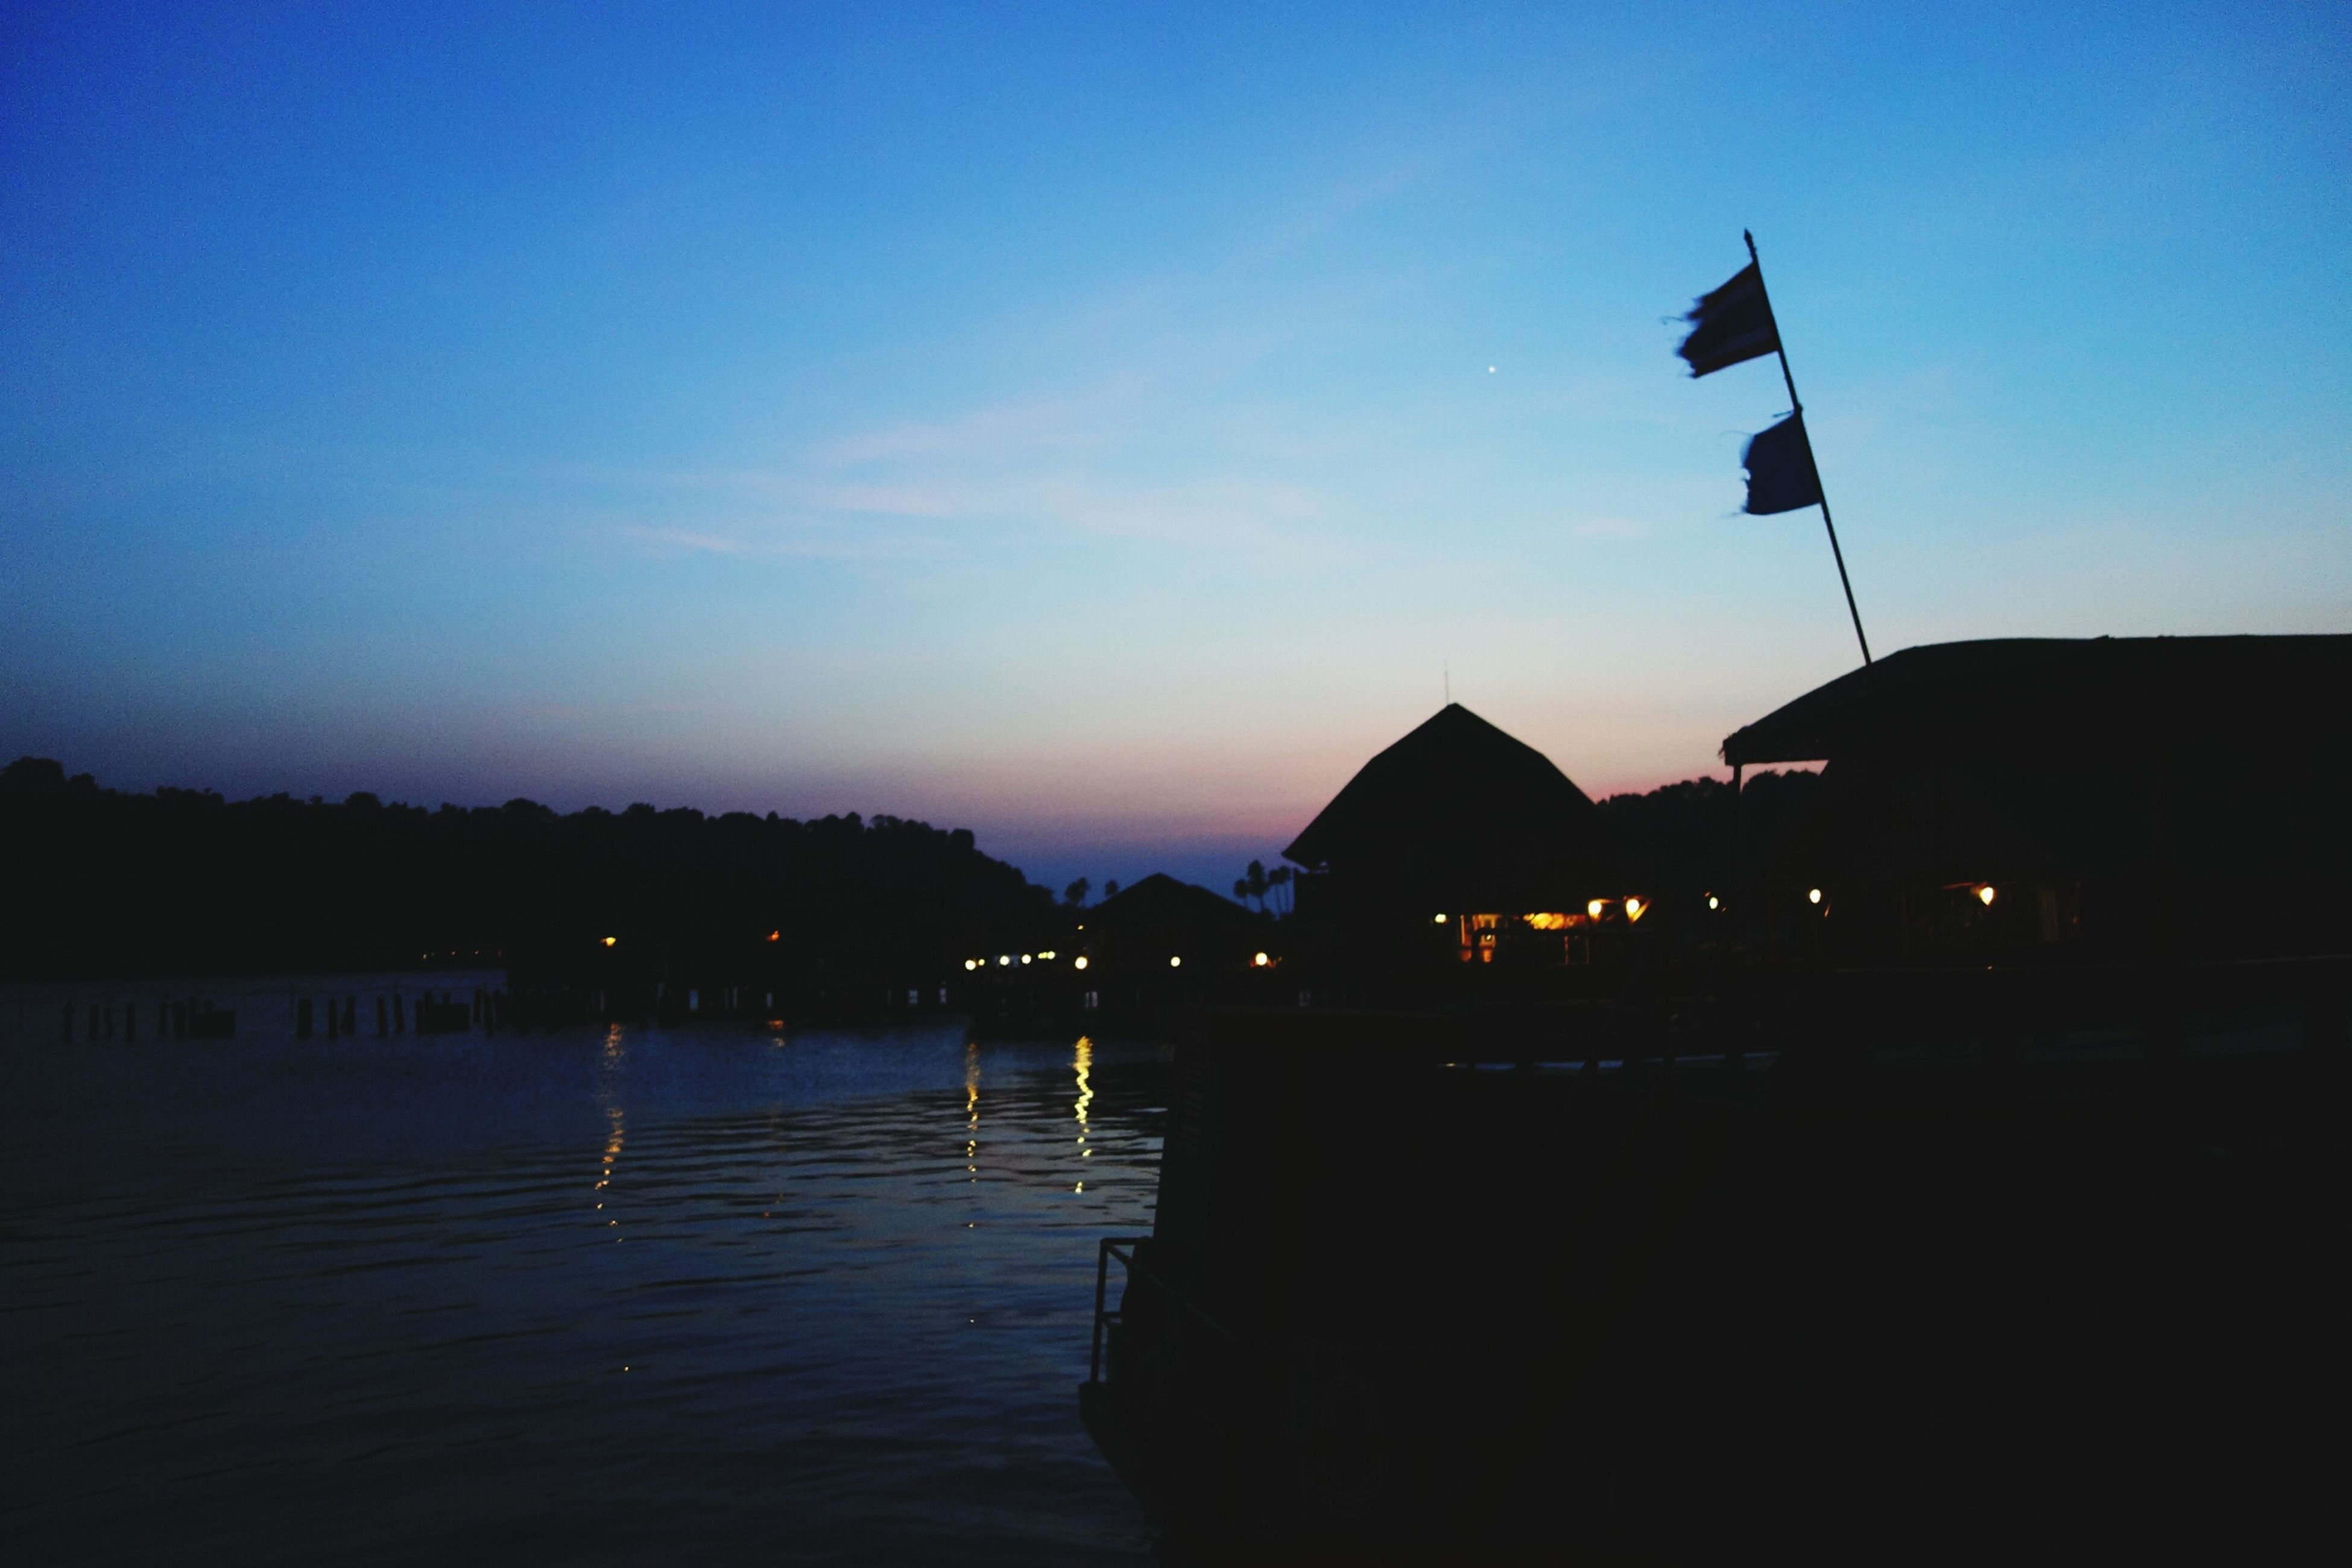 illuminated, silhouette, water, built structure, architecture, sunset, sky, dusk, building exterior, reflection, night, blue, tranquility, river, scenics, lighting equipment, nature, lake, waterfront, tranquil scene